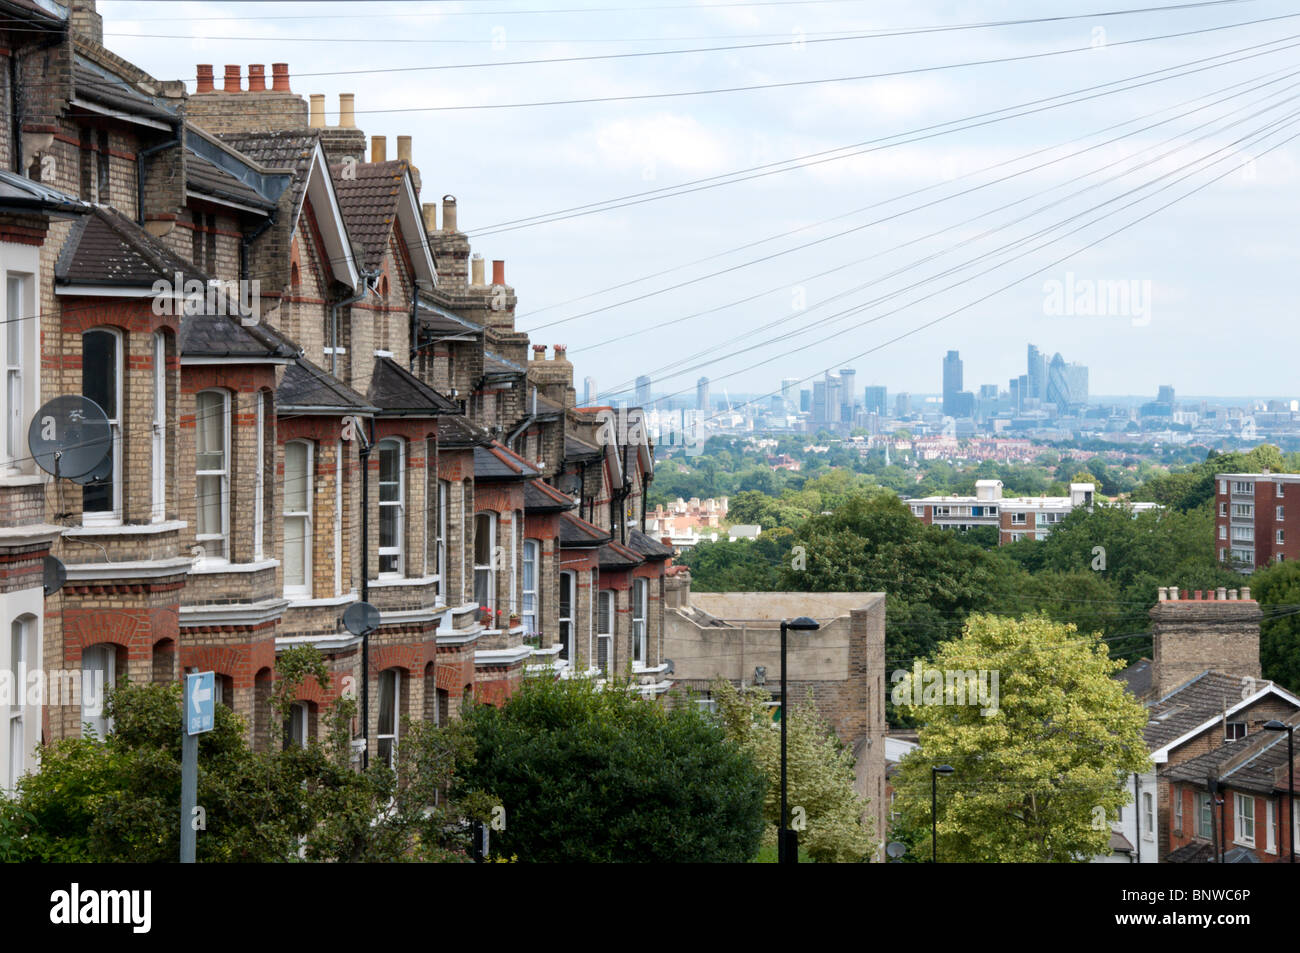 The City of London seen from Woodland Road in Crystal Palace, London - Stock Image